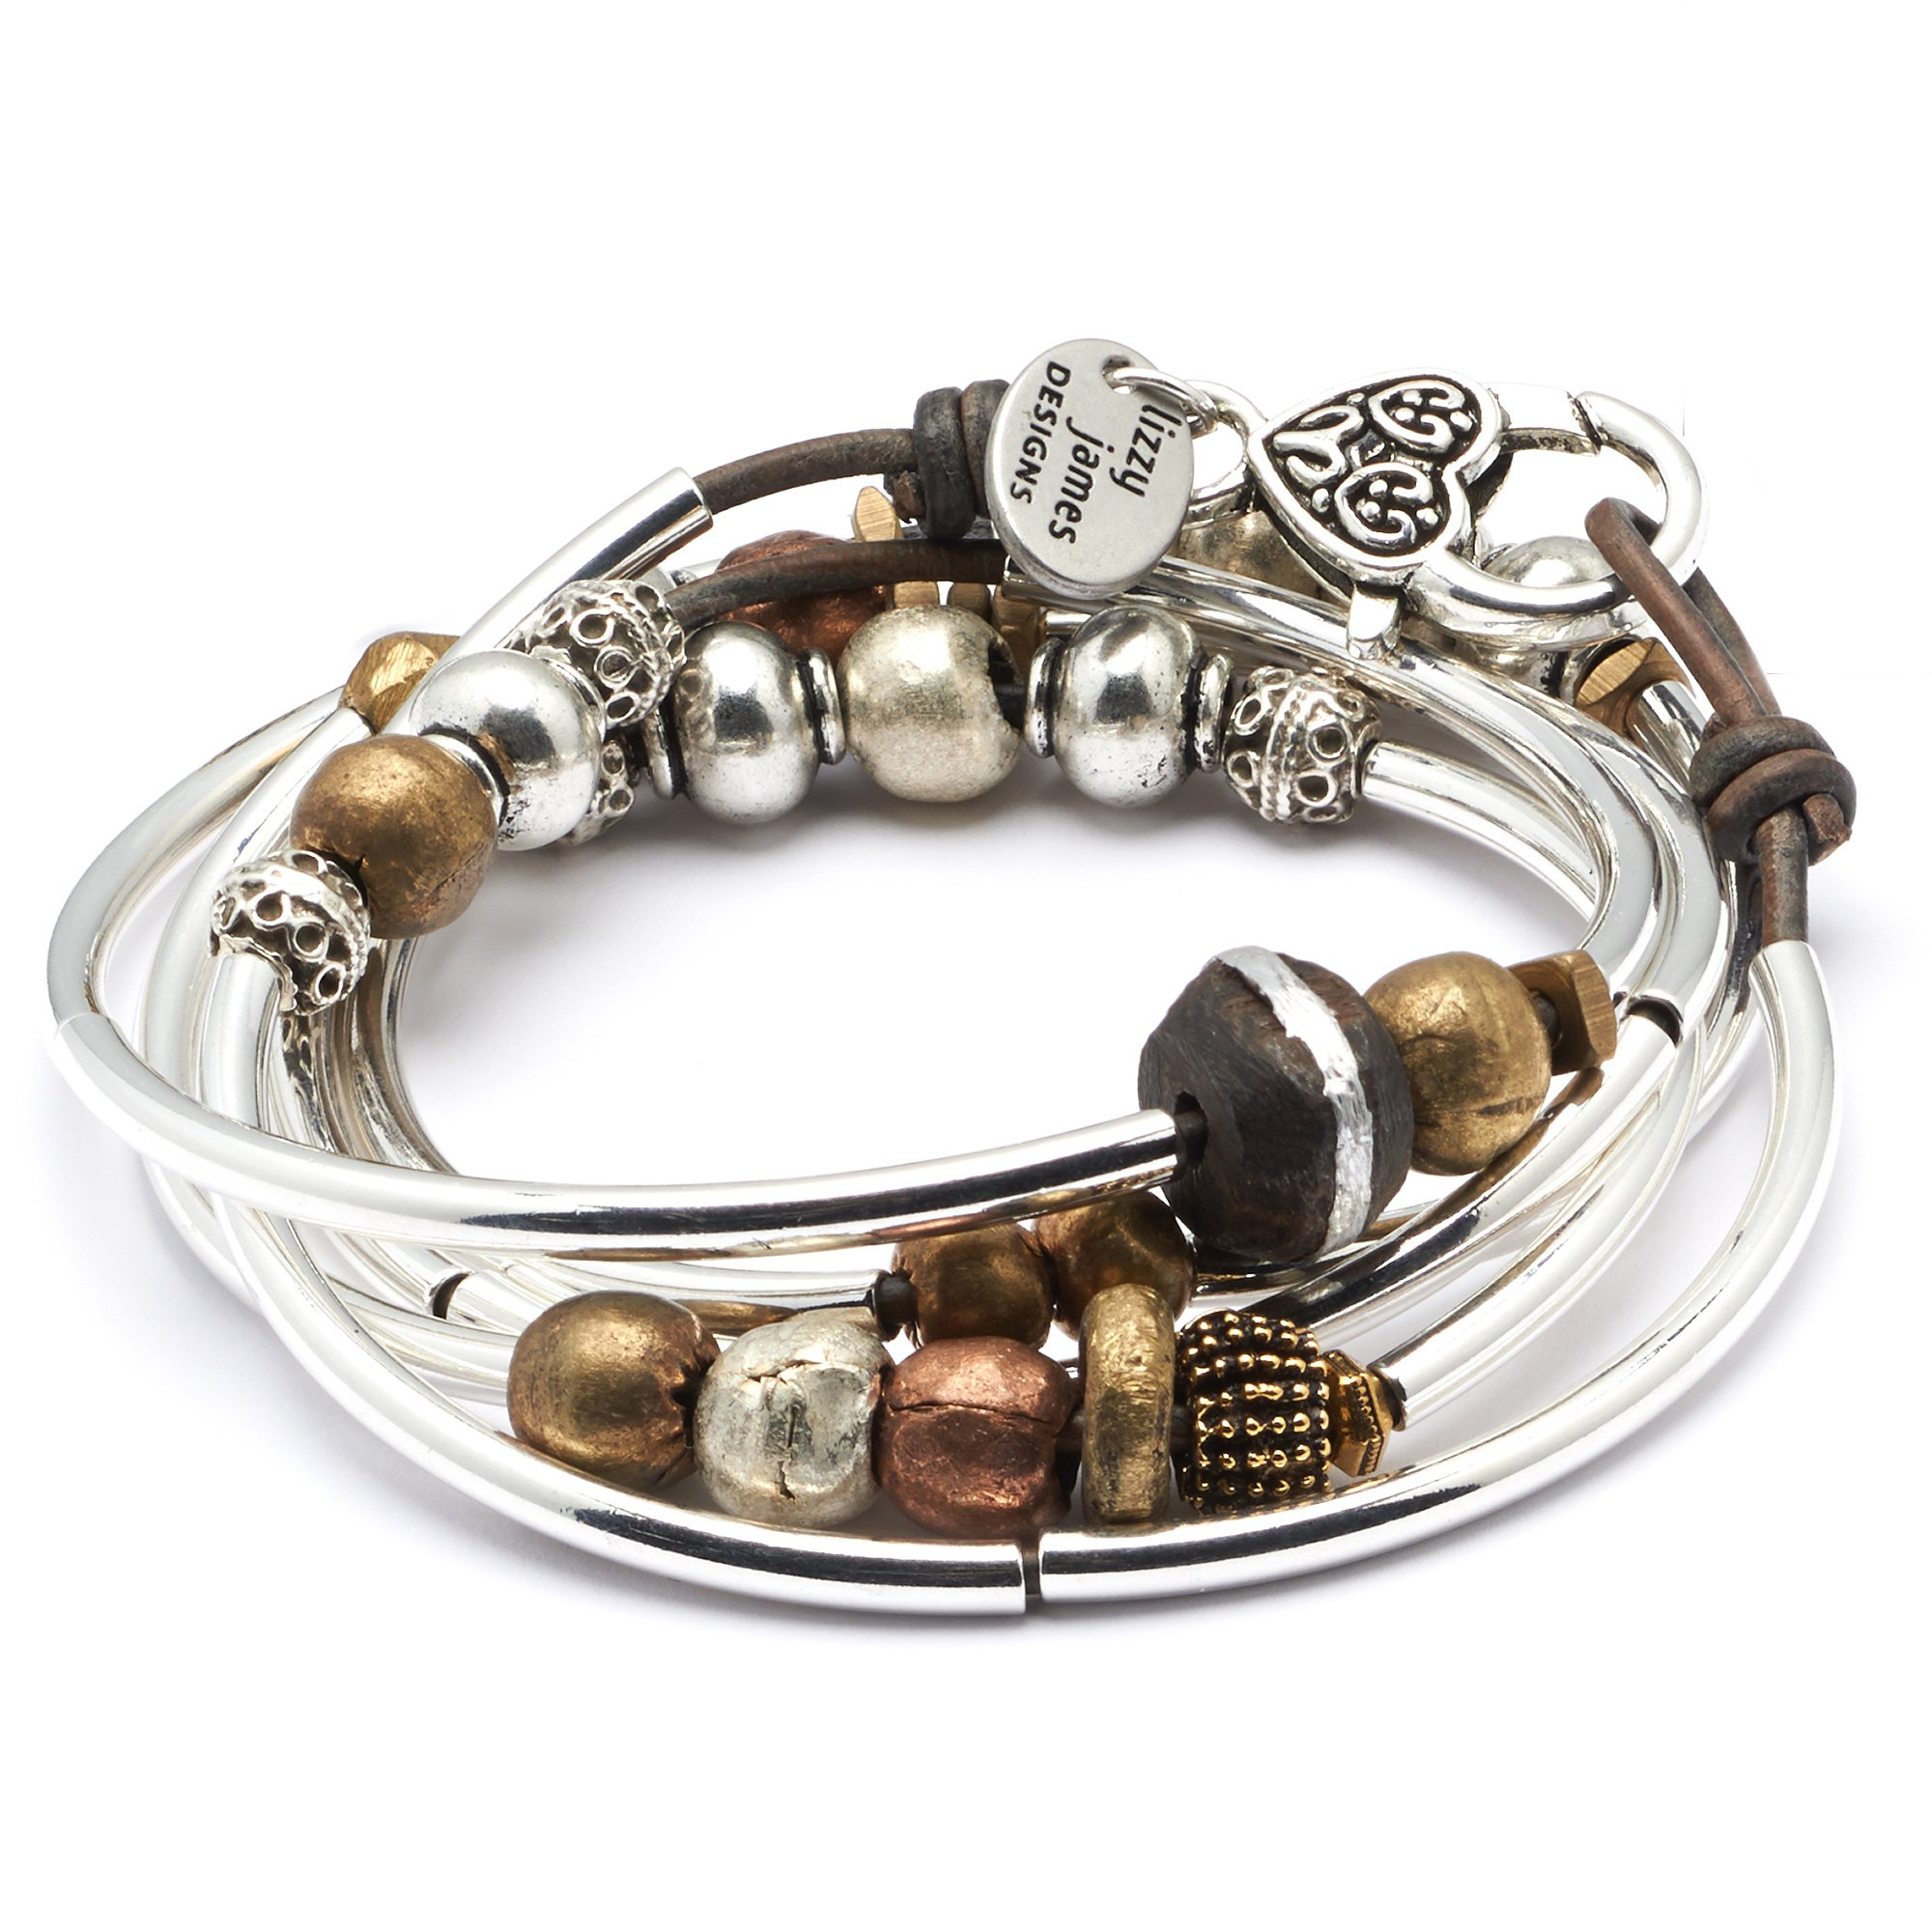 Infinity Silverplate Medium Bracelet Necklace with Dark Natural Brown Leather Wrap by Lizzy James